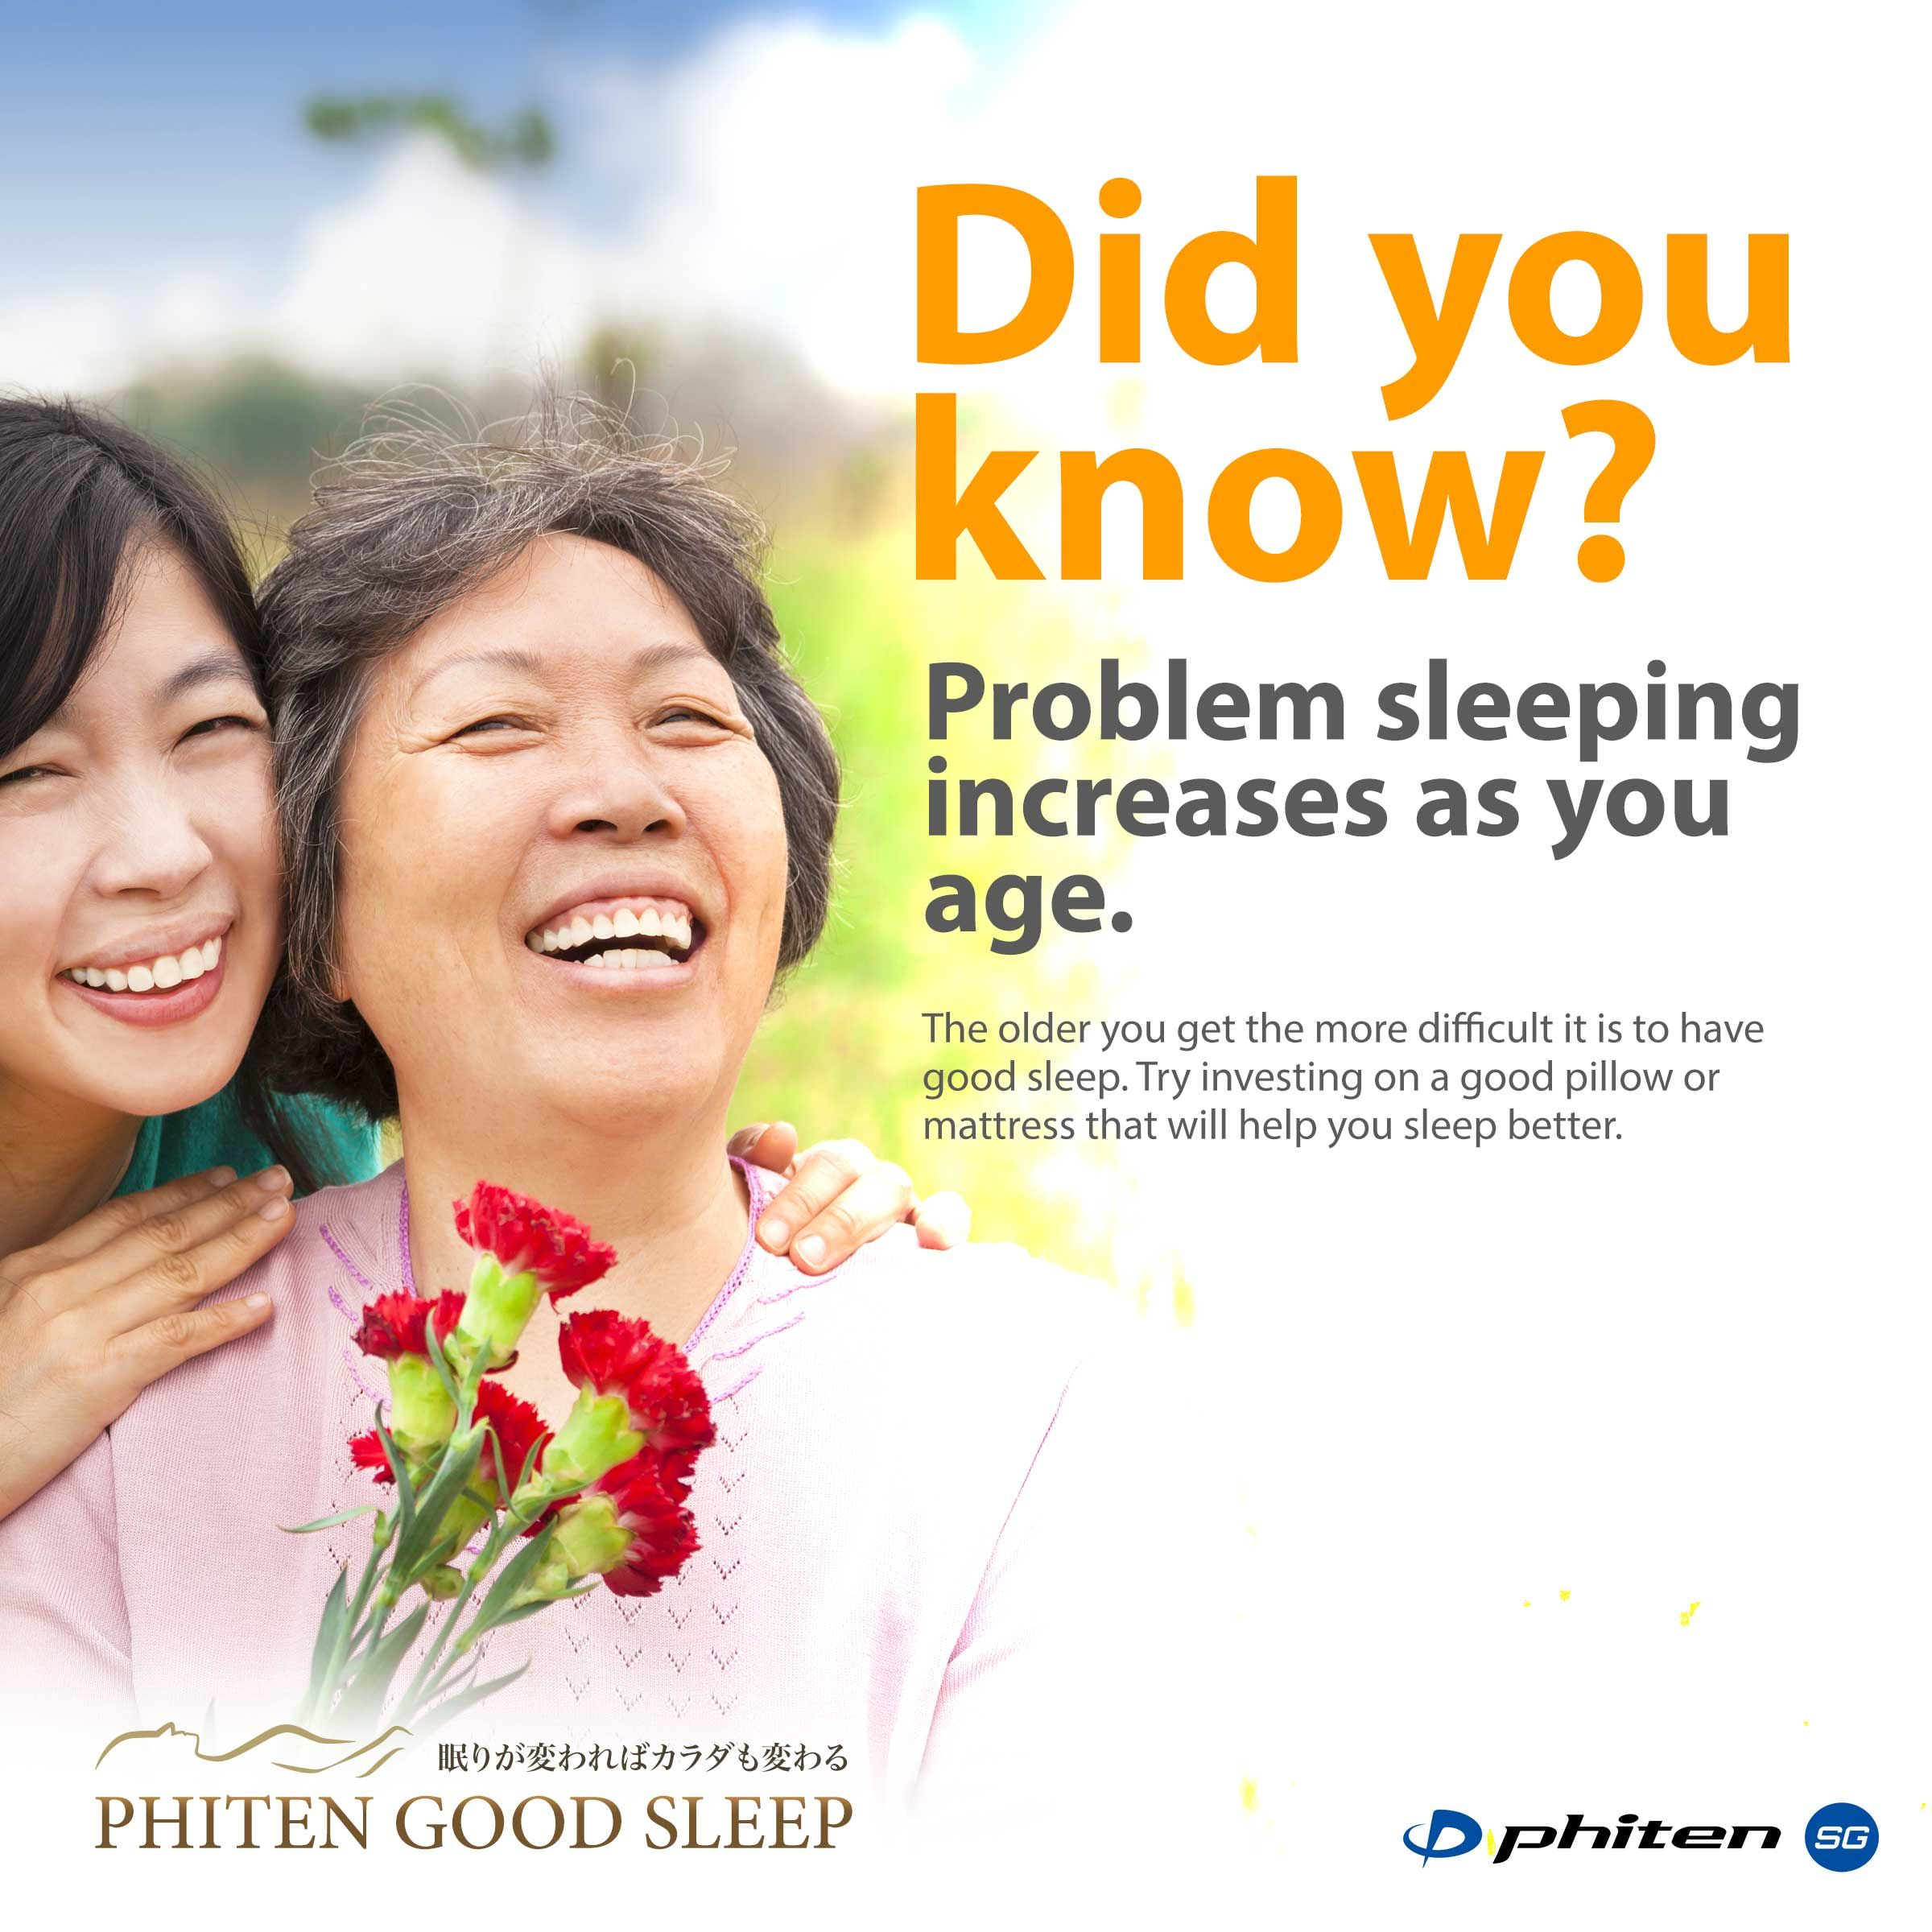 age affects sleep. indulge in what you can to make sure you get at